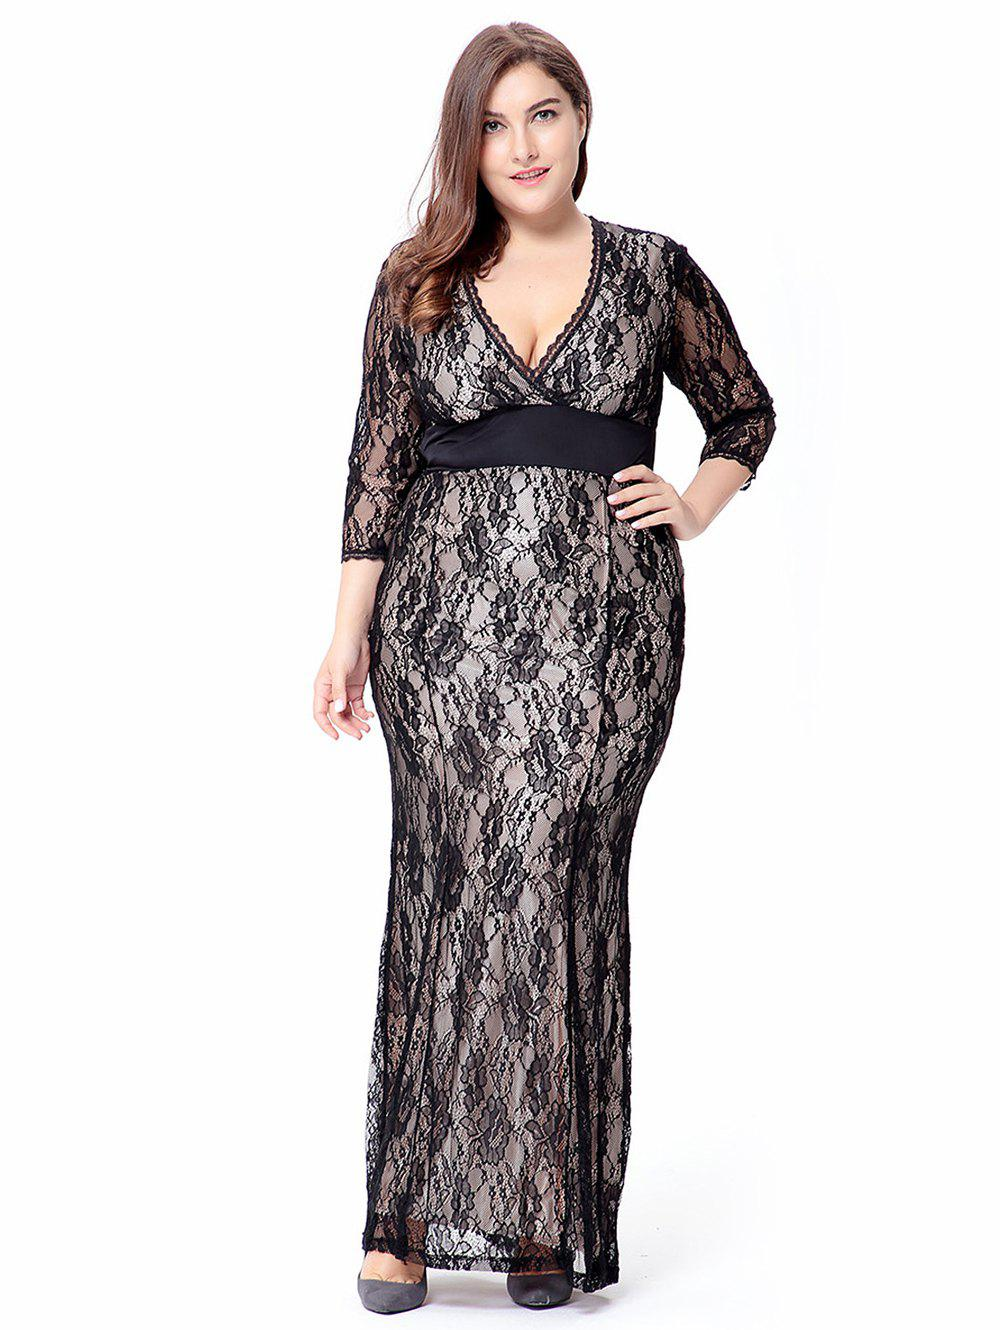 Empire Waist Plus Size Lace Bodycon Dress With SLeeves ноутбук dell vostro 5568 5568 3010 5568 3010